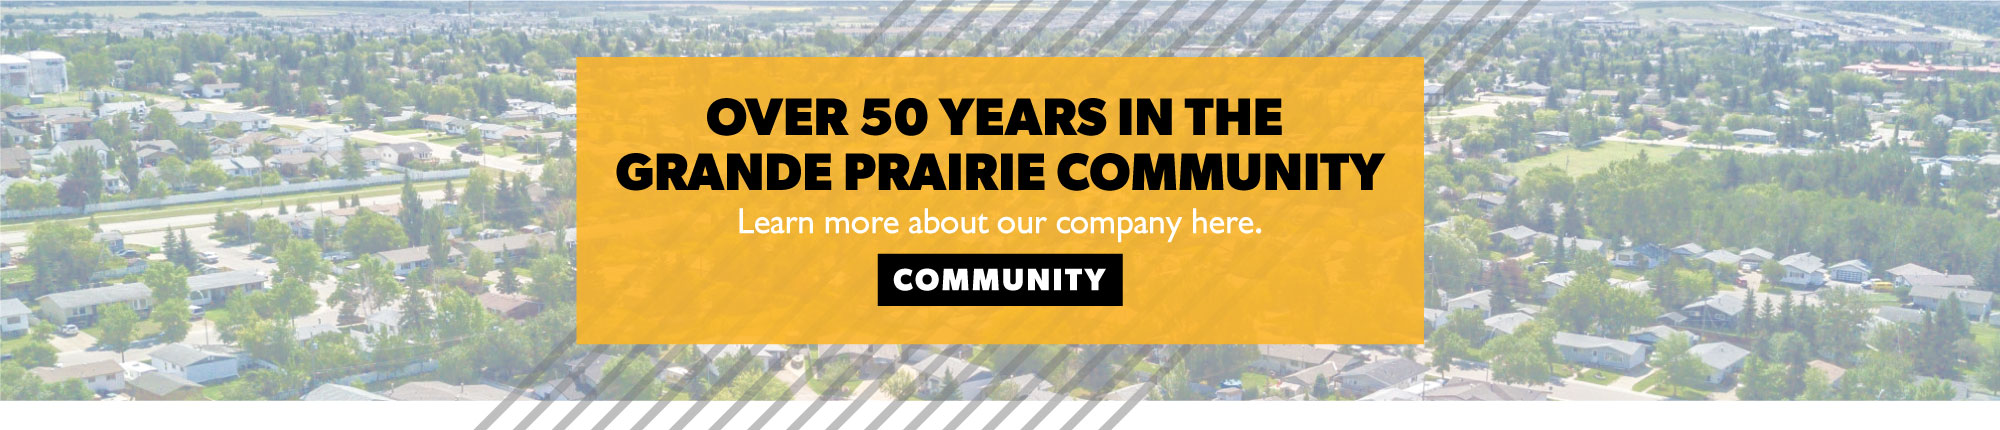 Over 50 Years in the Grande Prairie Community